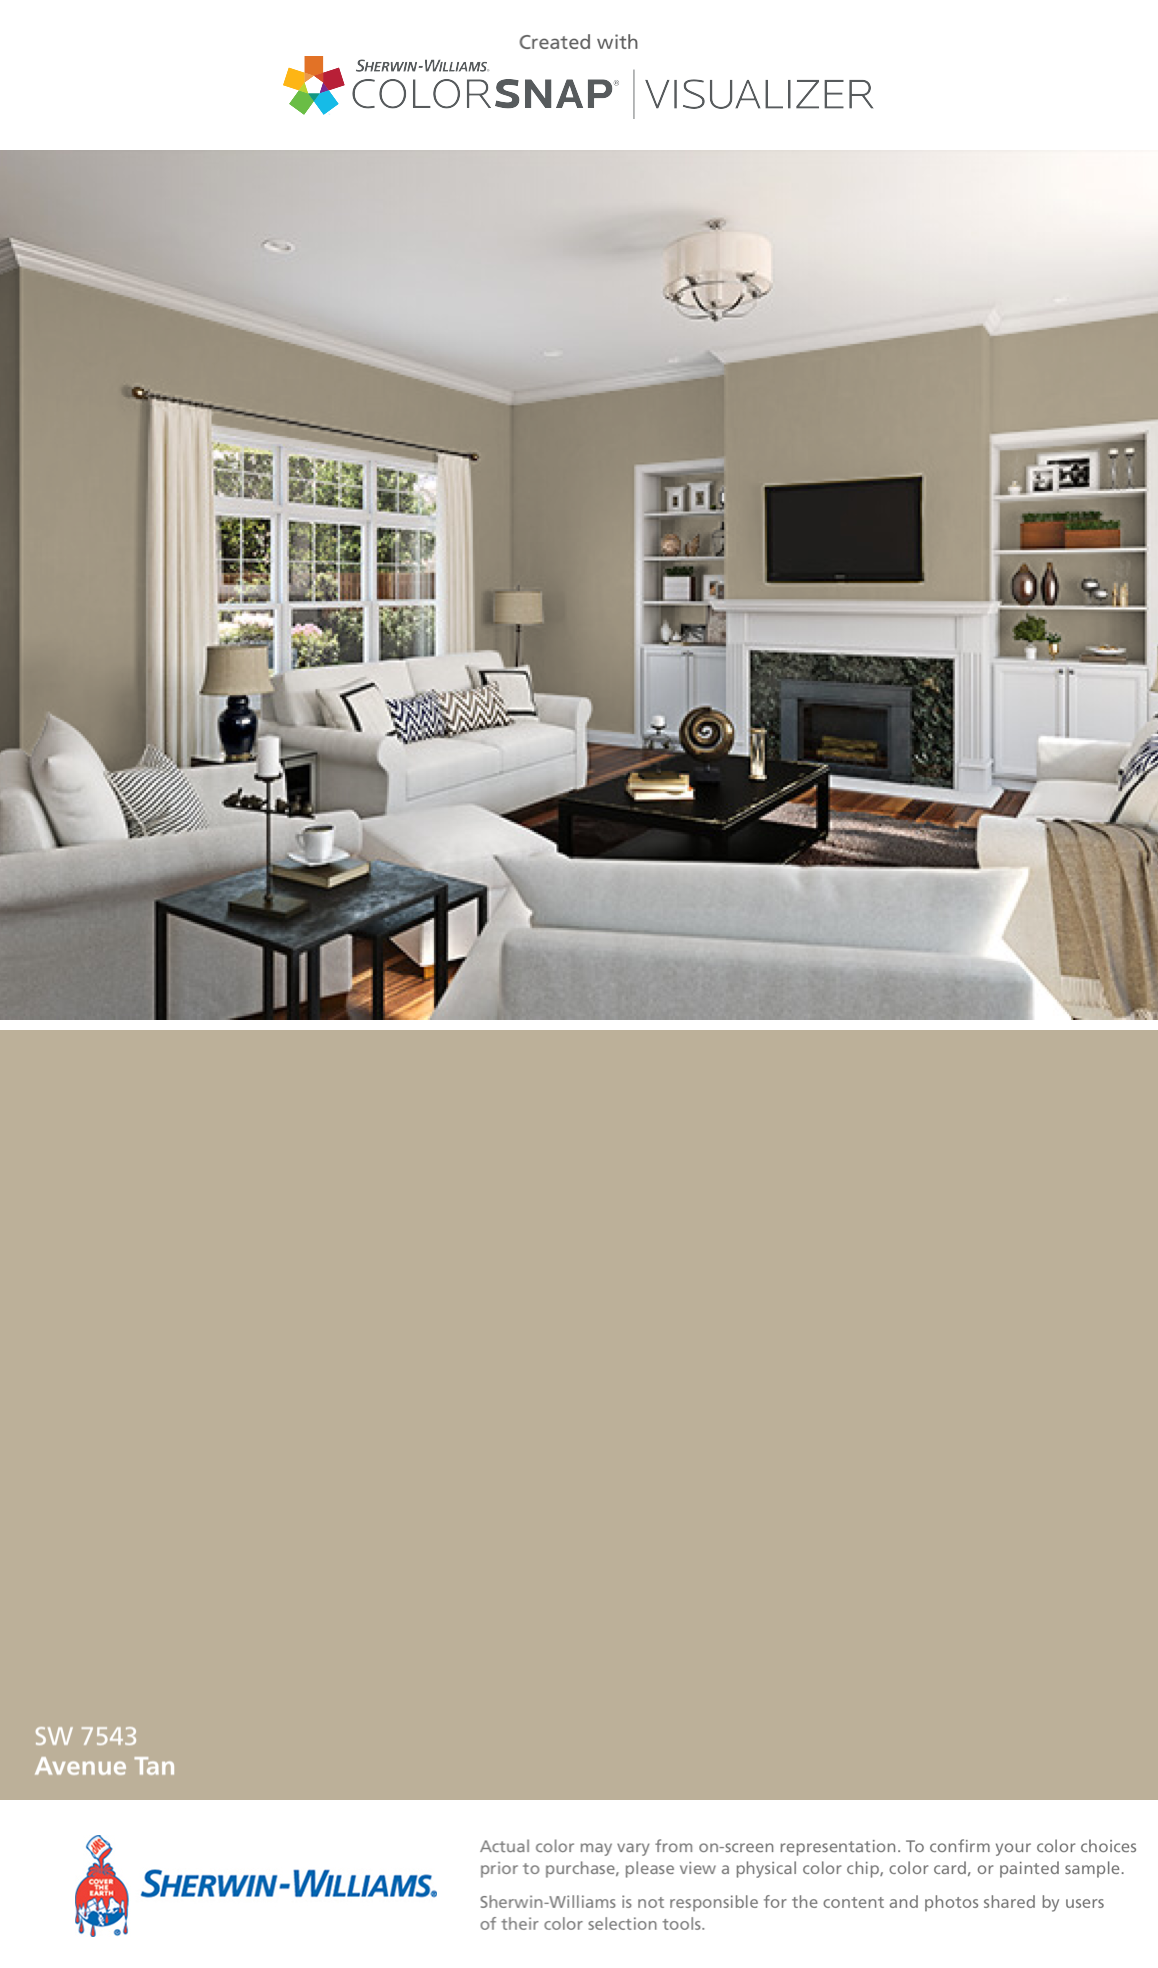 I found this color with colorsnap visualizer for iphone by sherwin williams avenue tan sw 7543